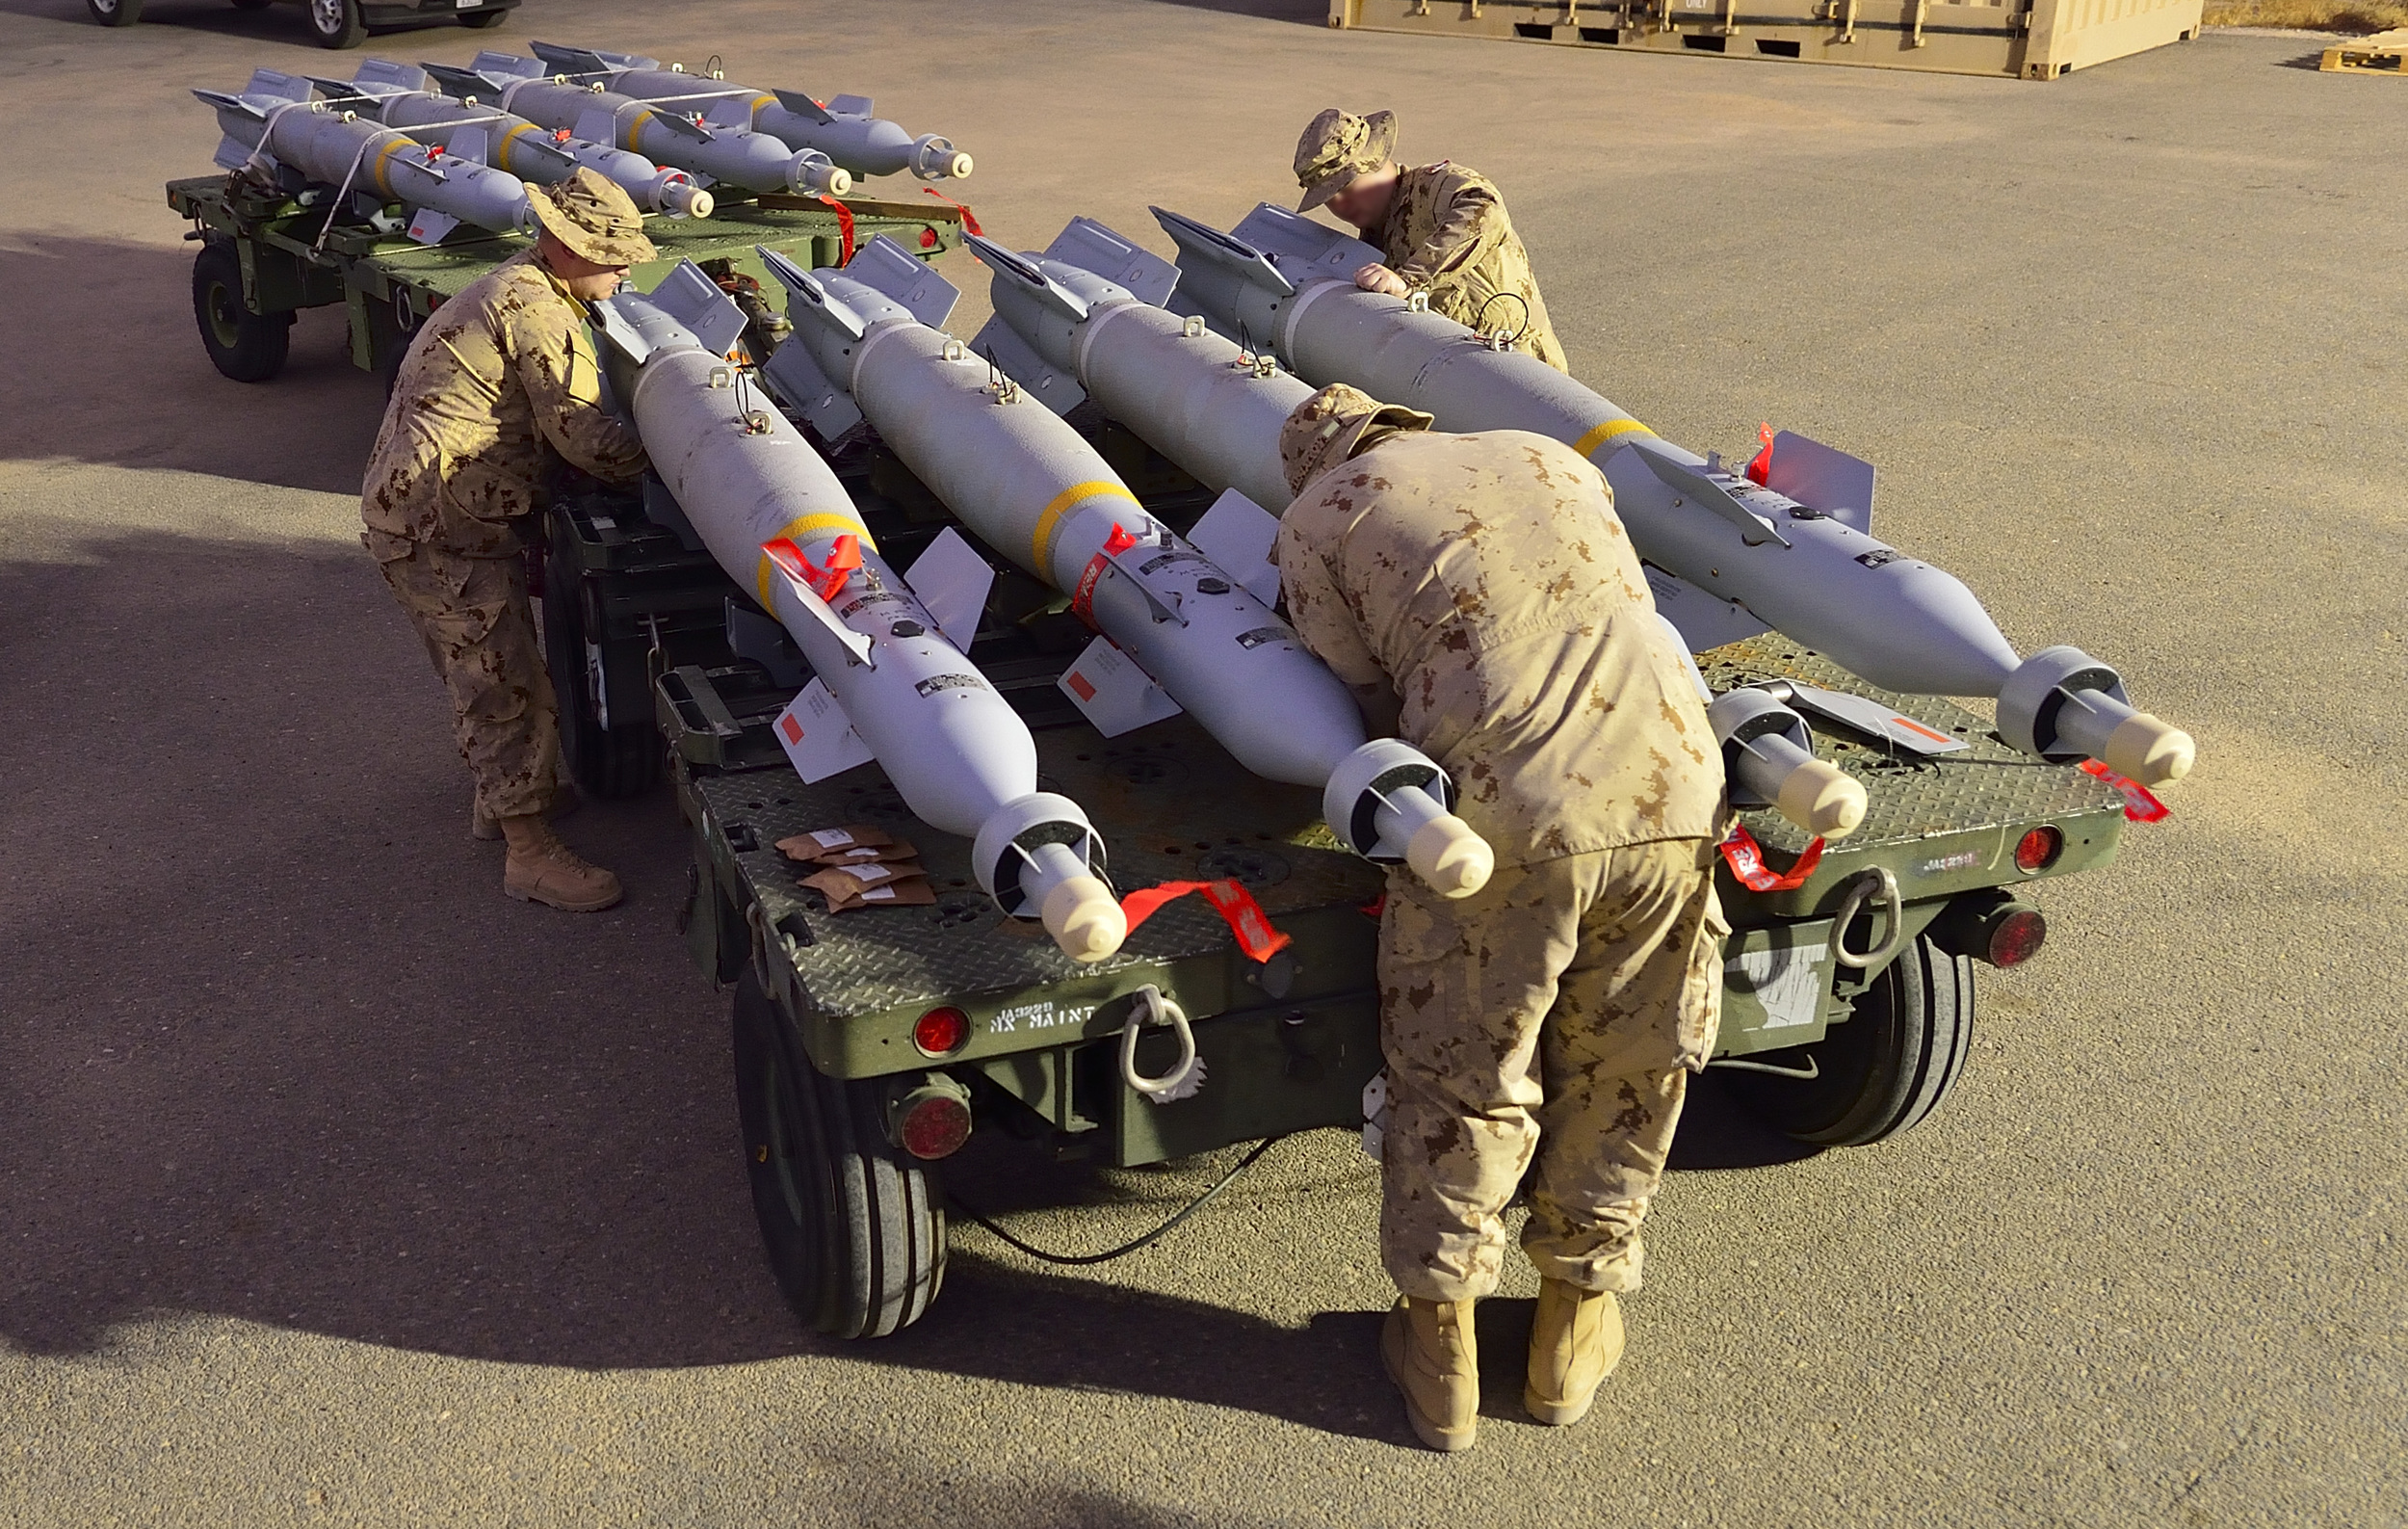 """Canadian Armed Forces Ammunition Technicians in Kuwait assemble 500-pound guided bombs that will be mounted on CF-188 Fighter jets flying combat missions over Iraq during Operation IMPACT on October 31, 2014 . The RCAF would like to acquire low-collateral damage weapons (LCDW) for use in targeted missions over cities and """"politically sensitive operations"""" to cut down on the likelihood of collateral damage. (DND)"""